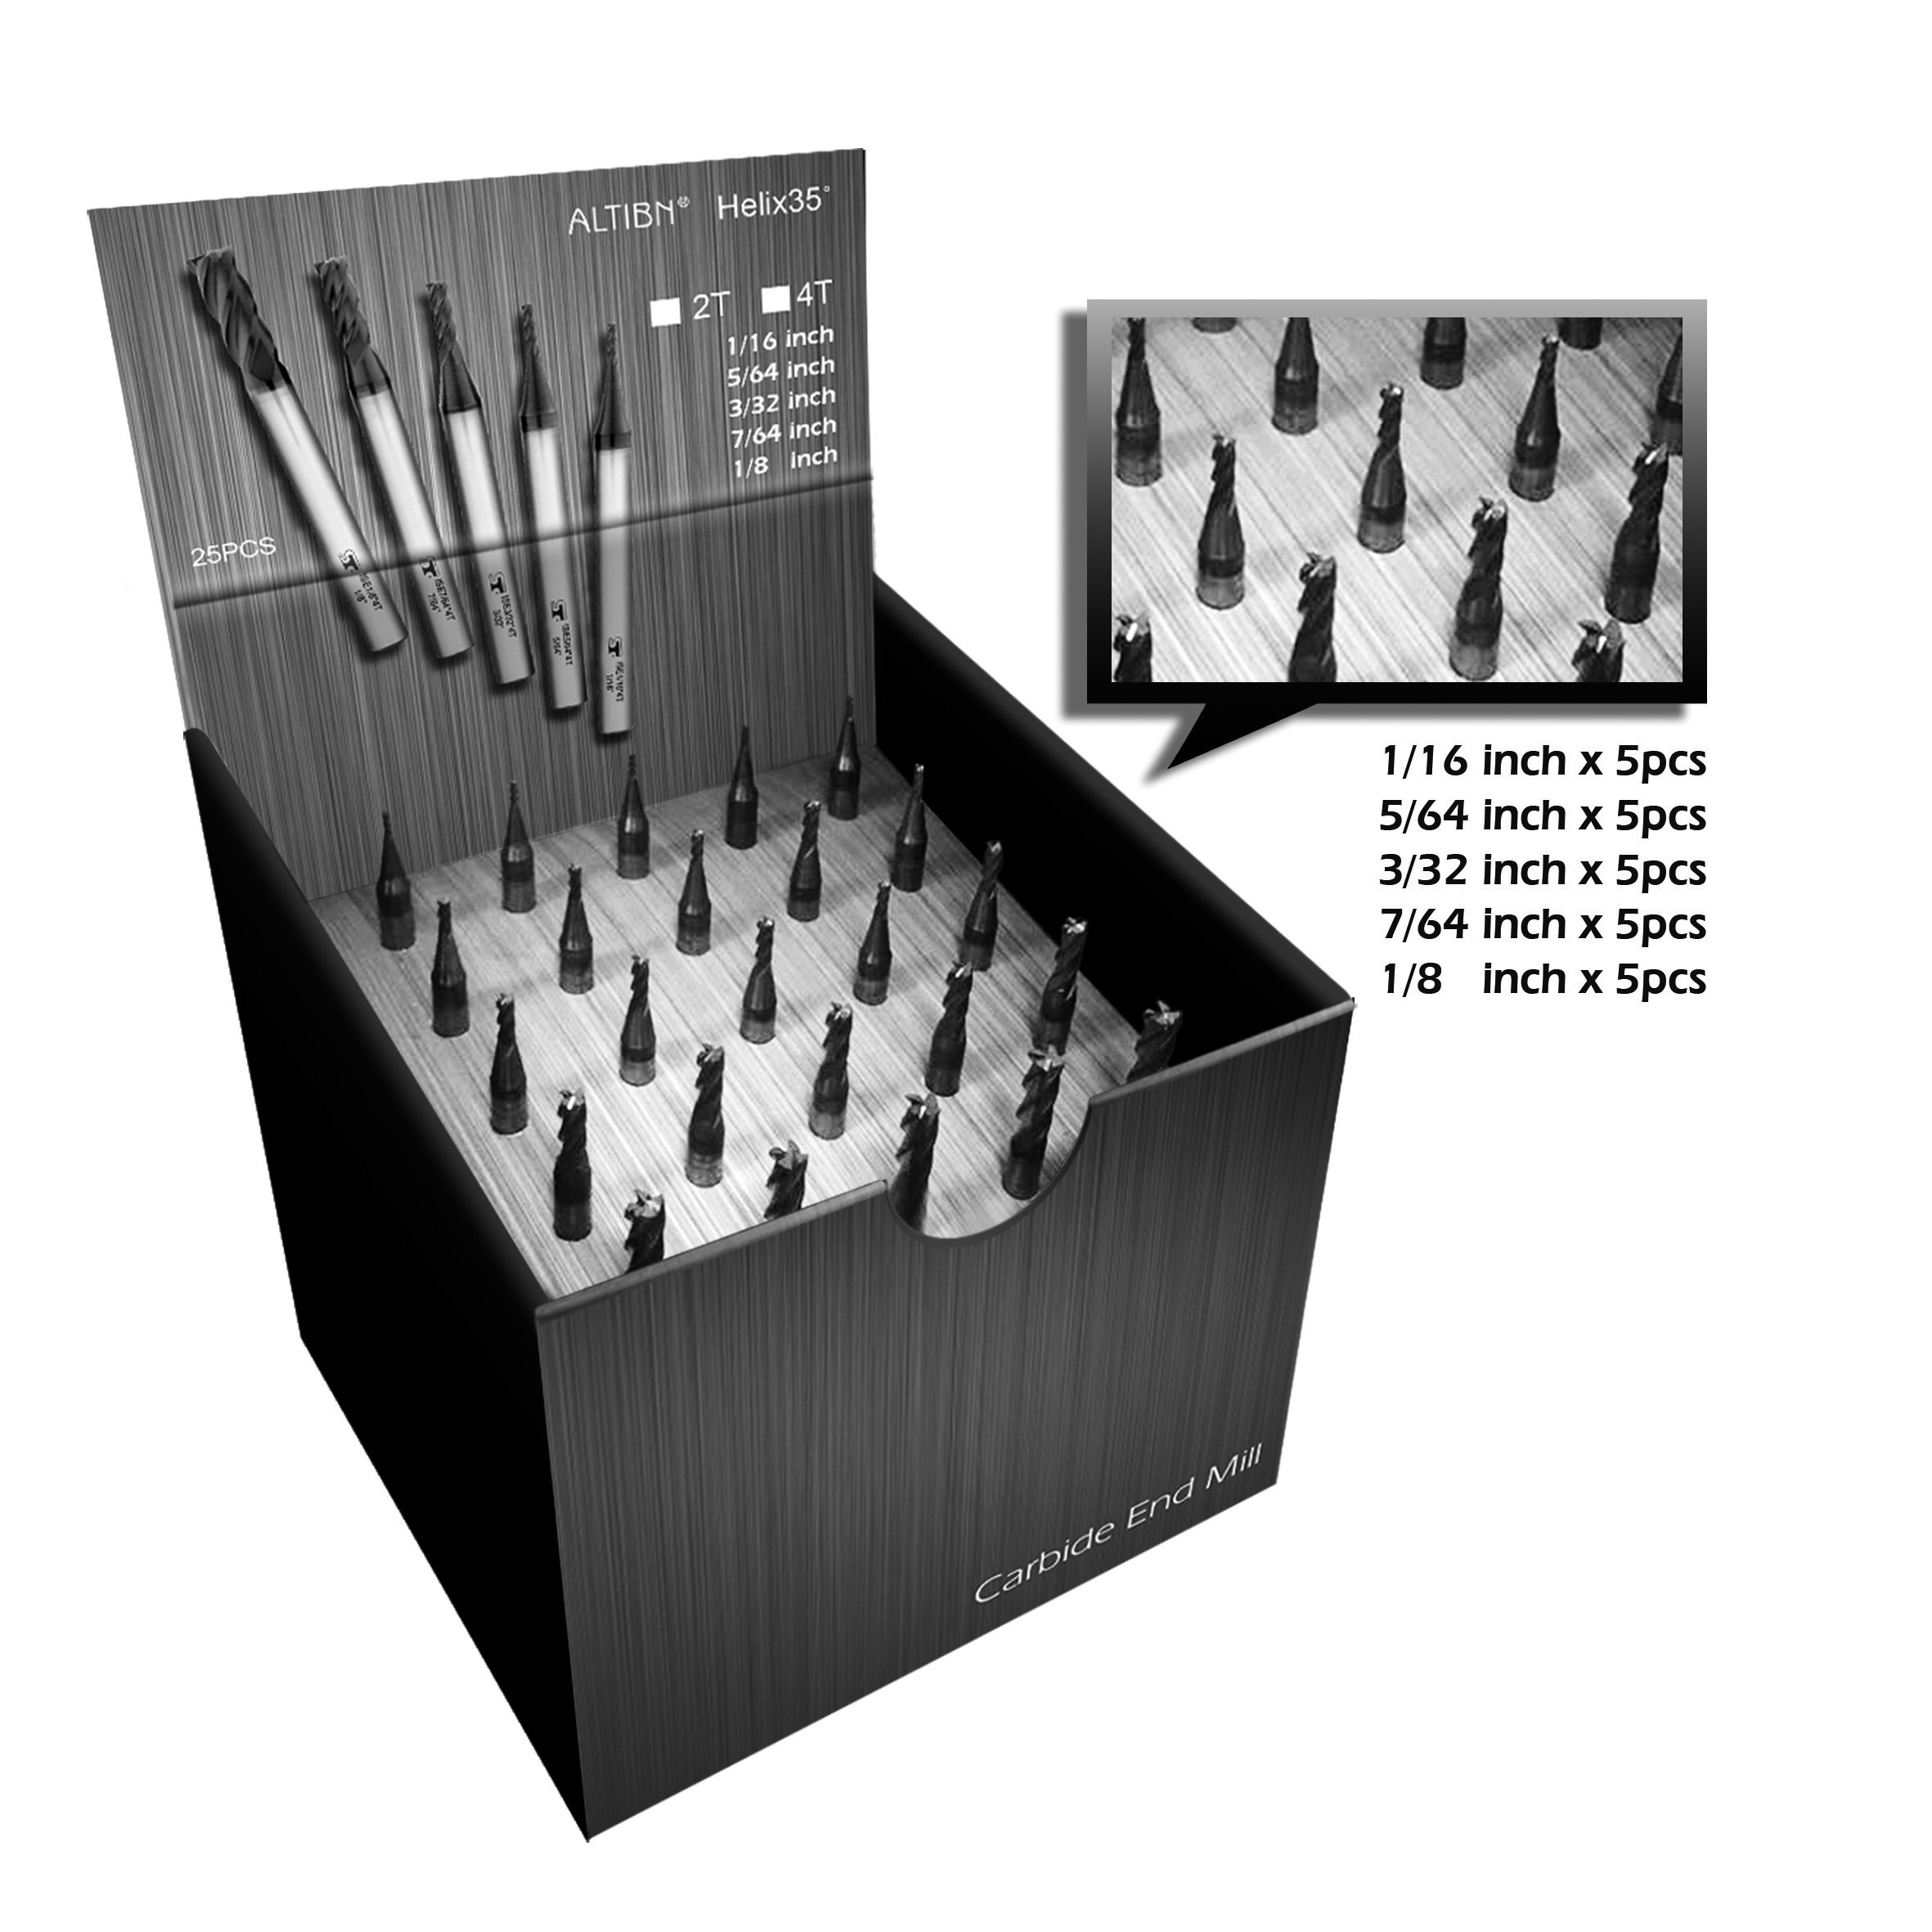 SPEED TIGER ISE Carbide Square End Mill 25 Piece Set - Micro Grain Carbide End Mill for Alloy Steels/Hardened Steels - AlTiBN Coating - 4 Flute - ISE-SET-4T - Fractional by SPEED TIGER